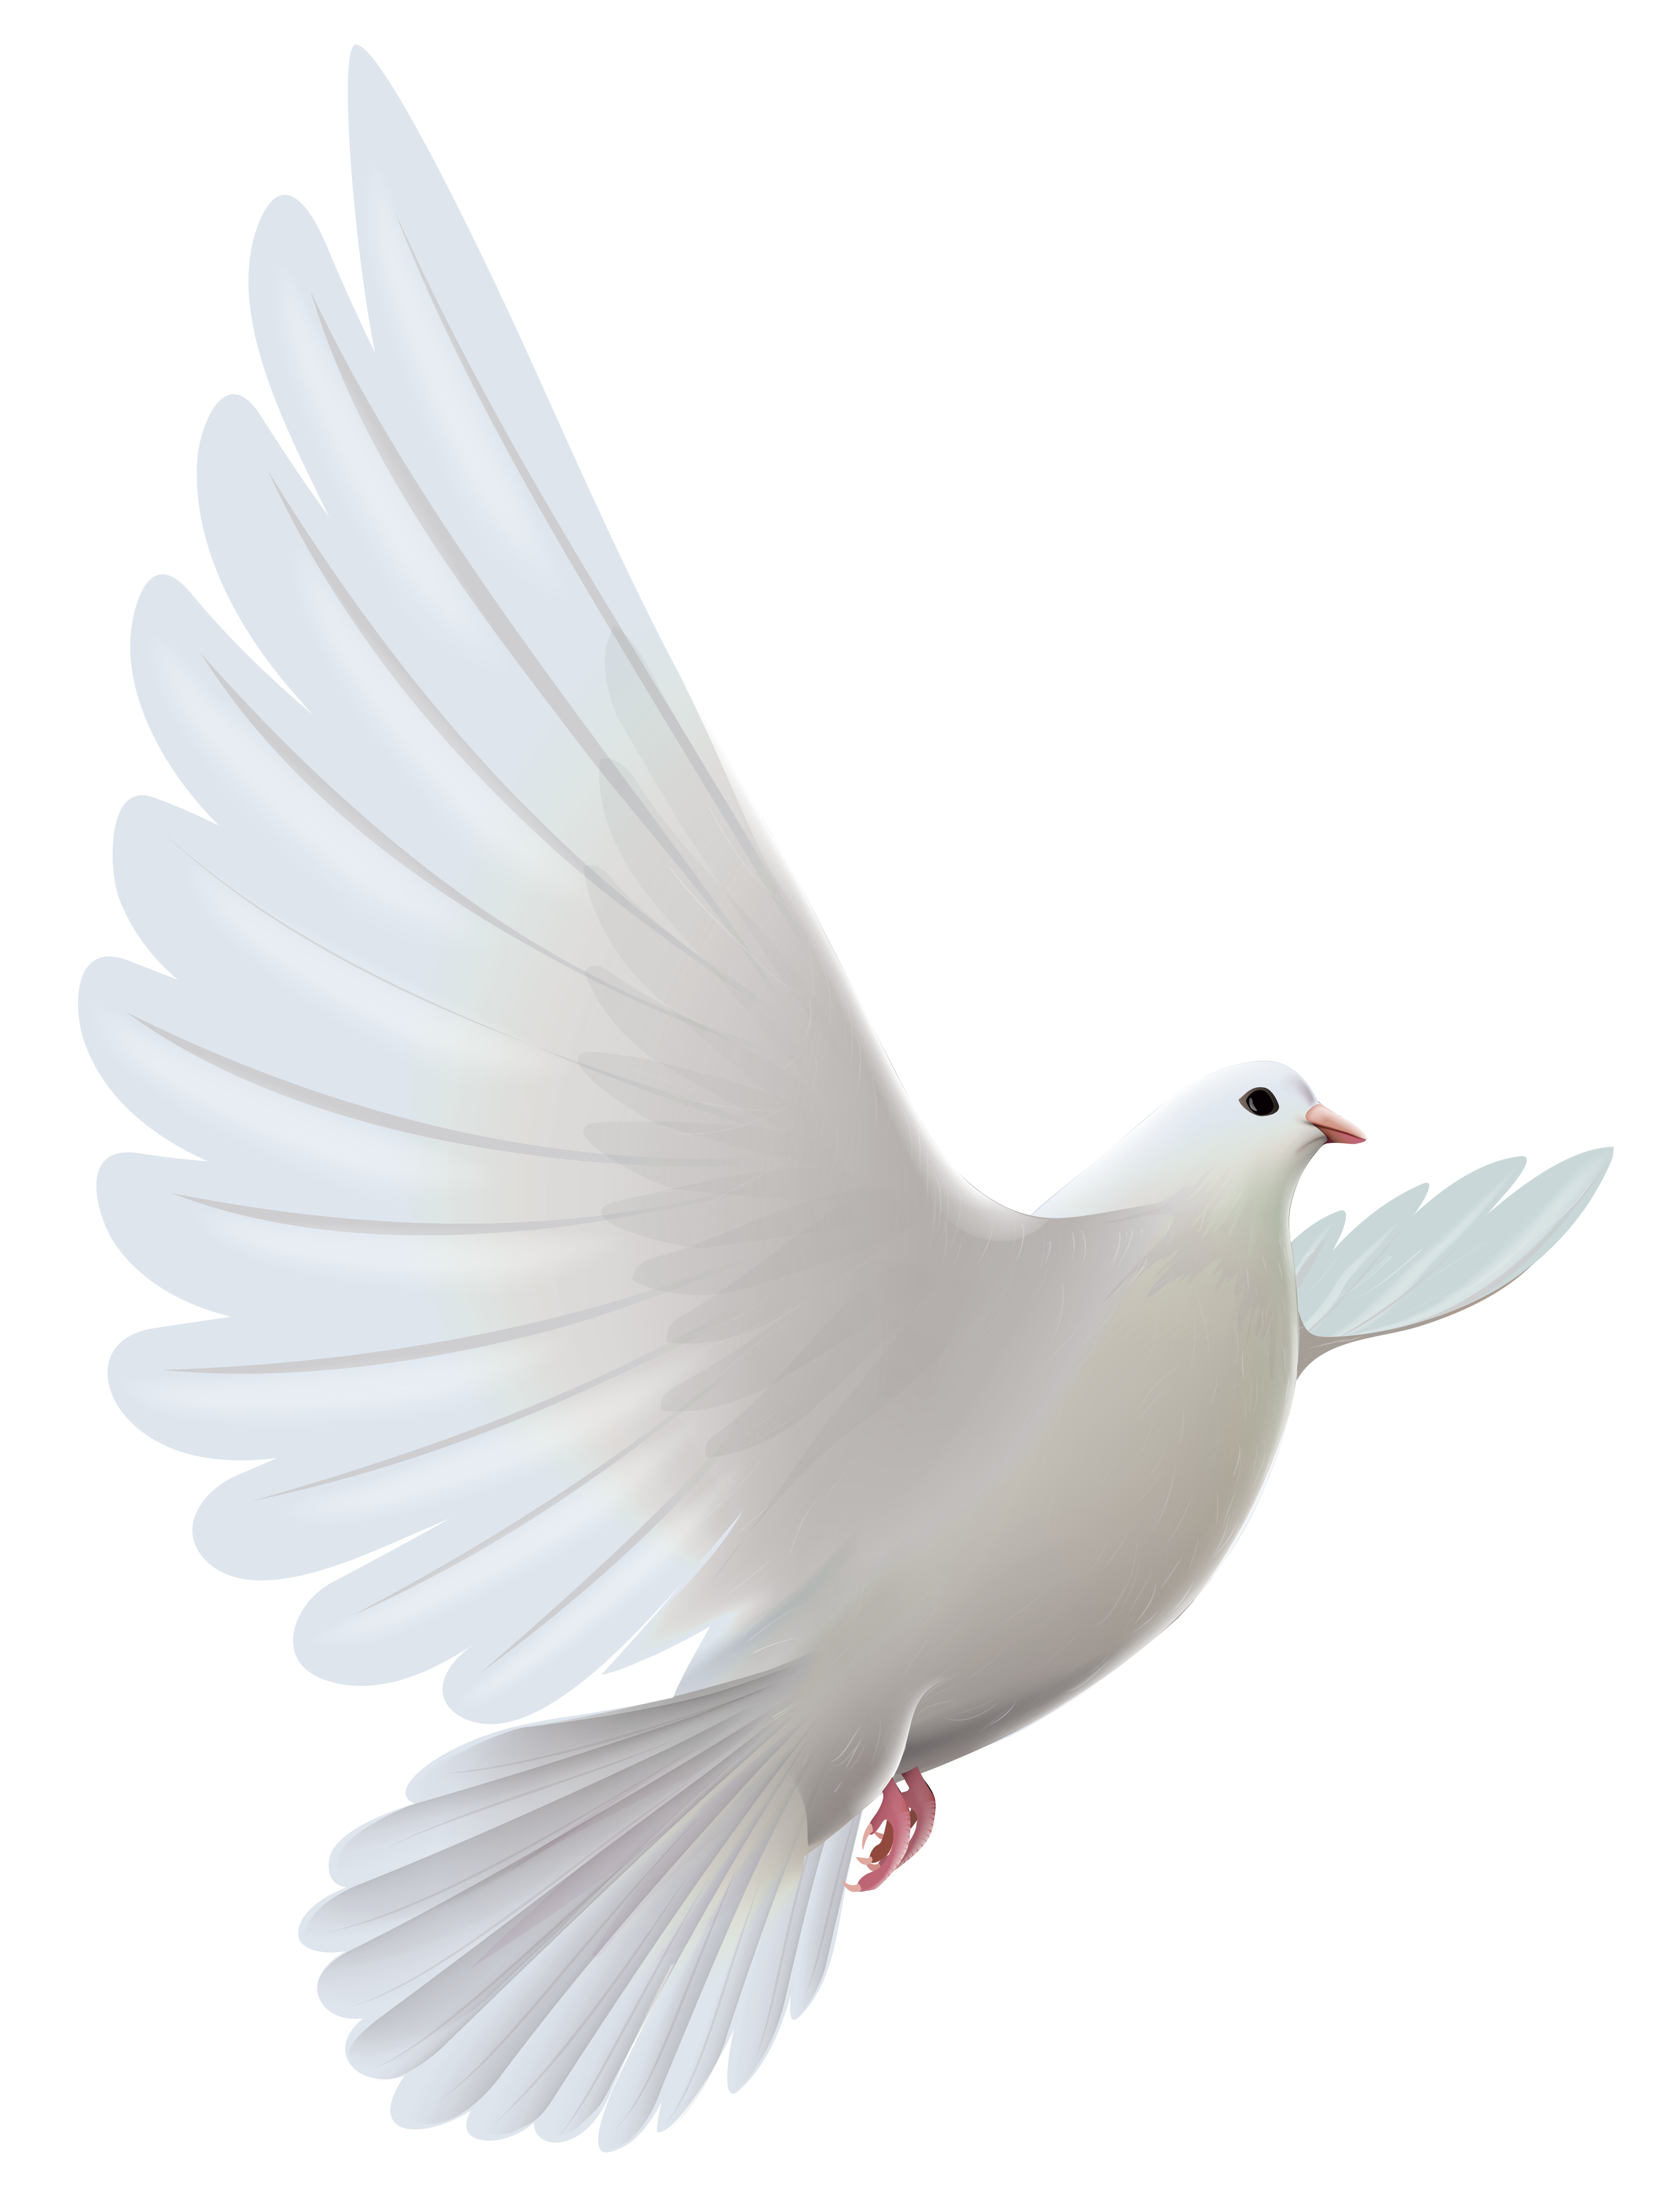 And Pigeons Transparent Prayer White Dove Bird PNG Image